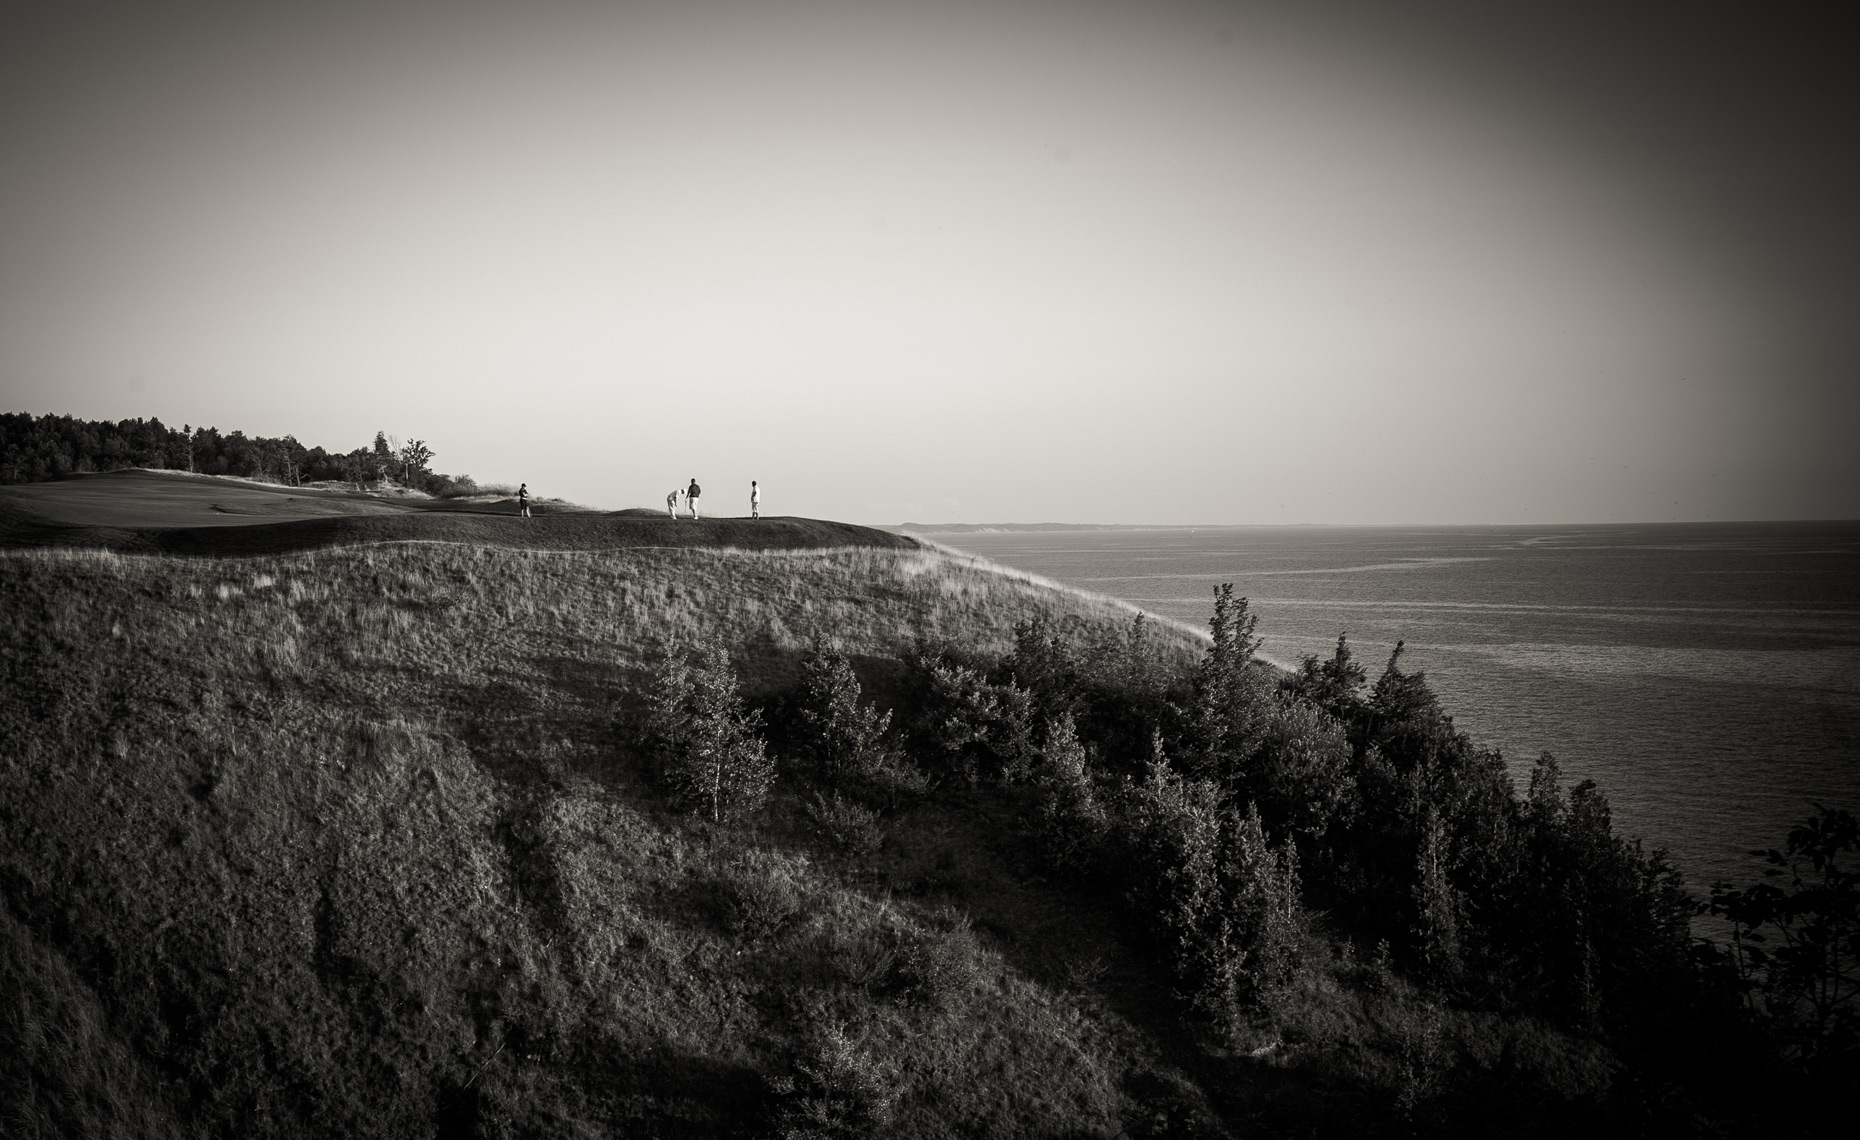 Neil-Colton-travel-photography-arcadia-bluffs-golf-club-168